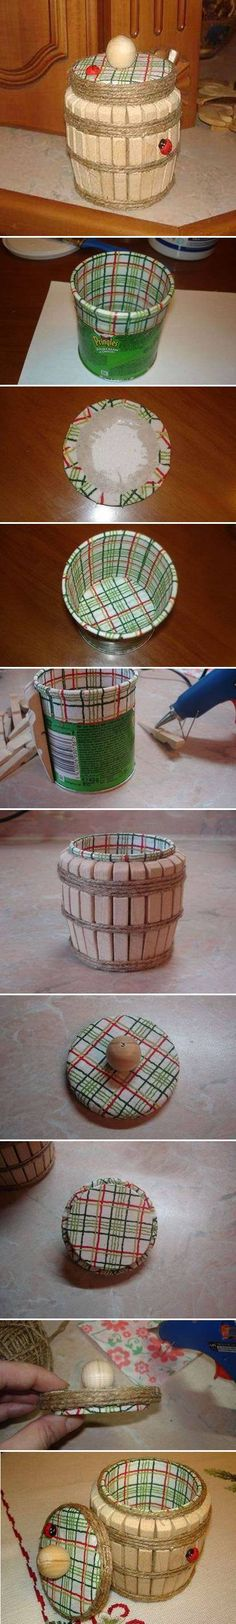 DIY Clothespin Barrel DIY Projects | UsefulDIY.com